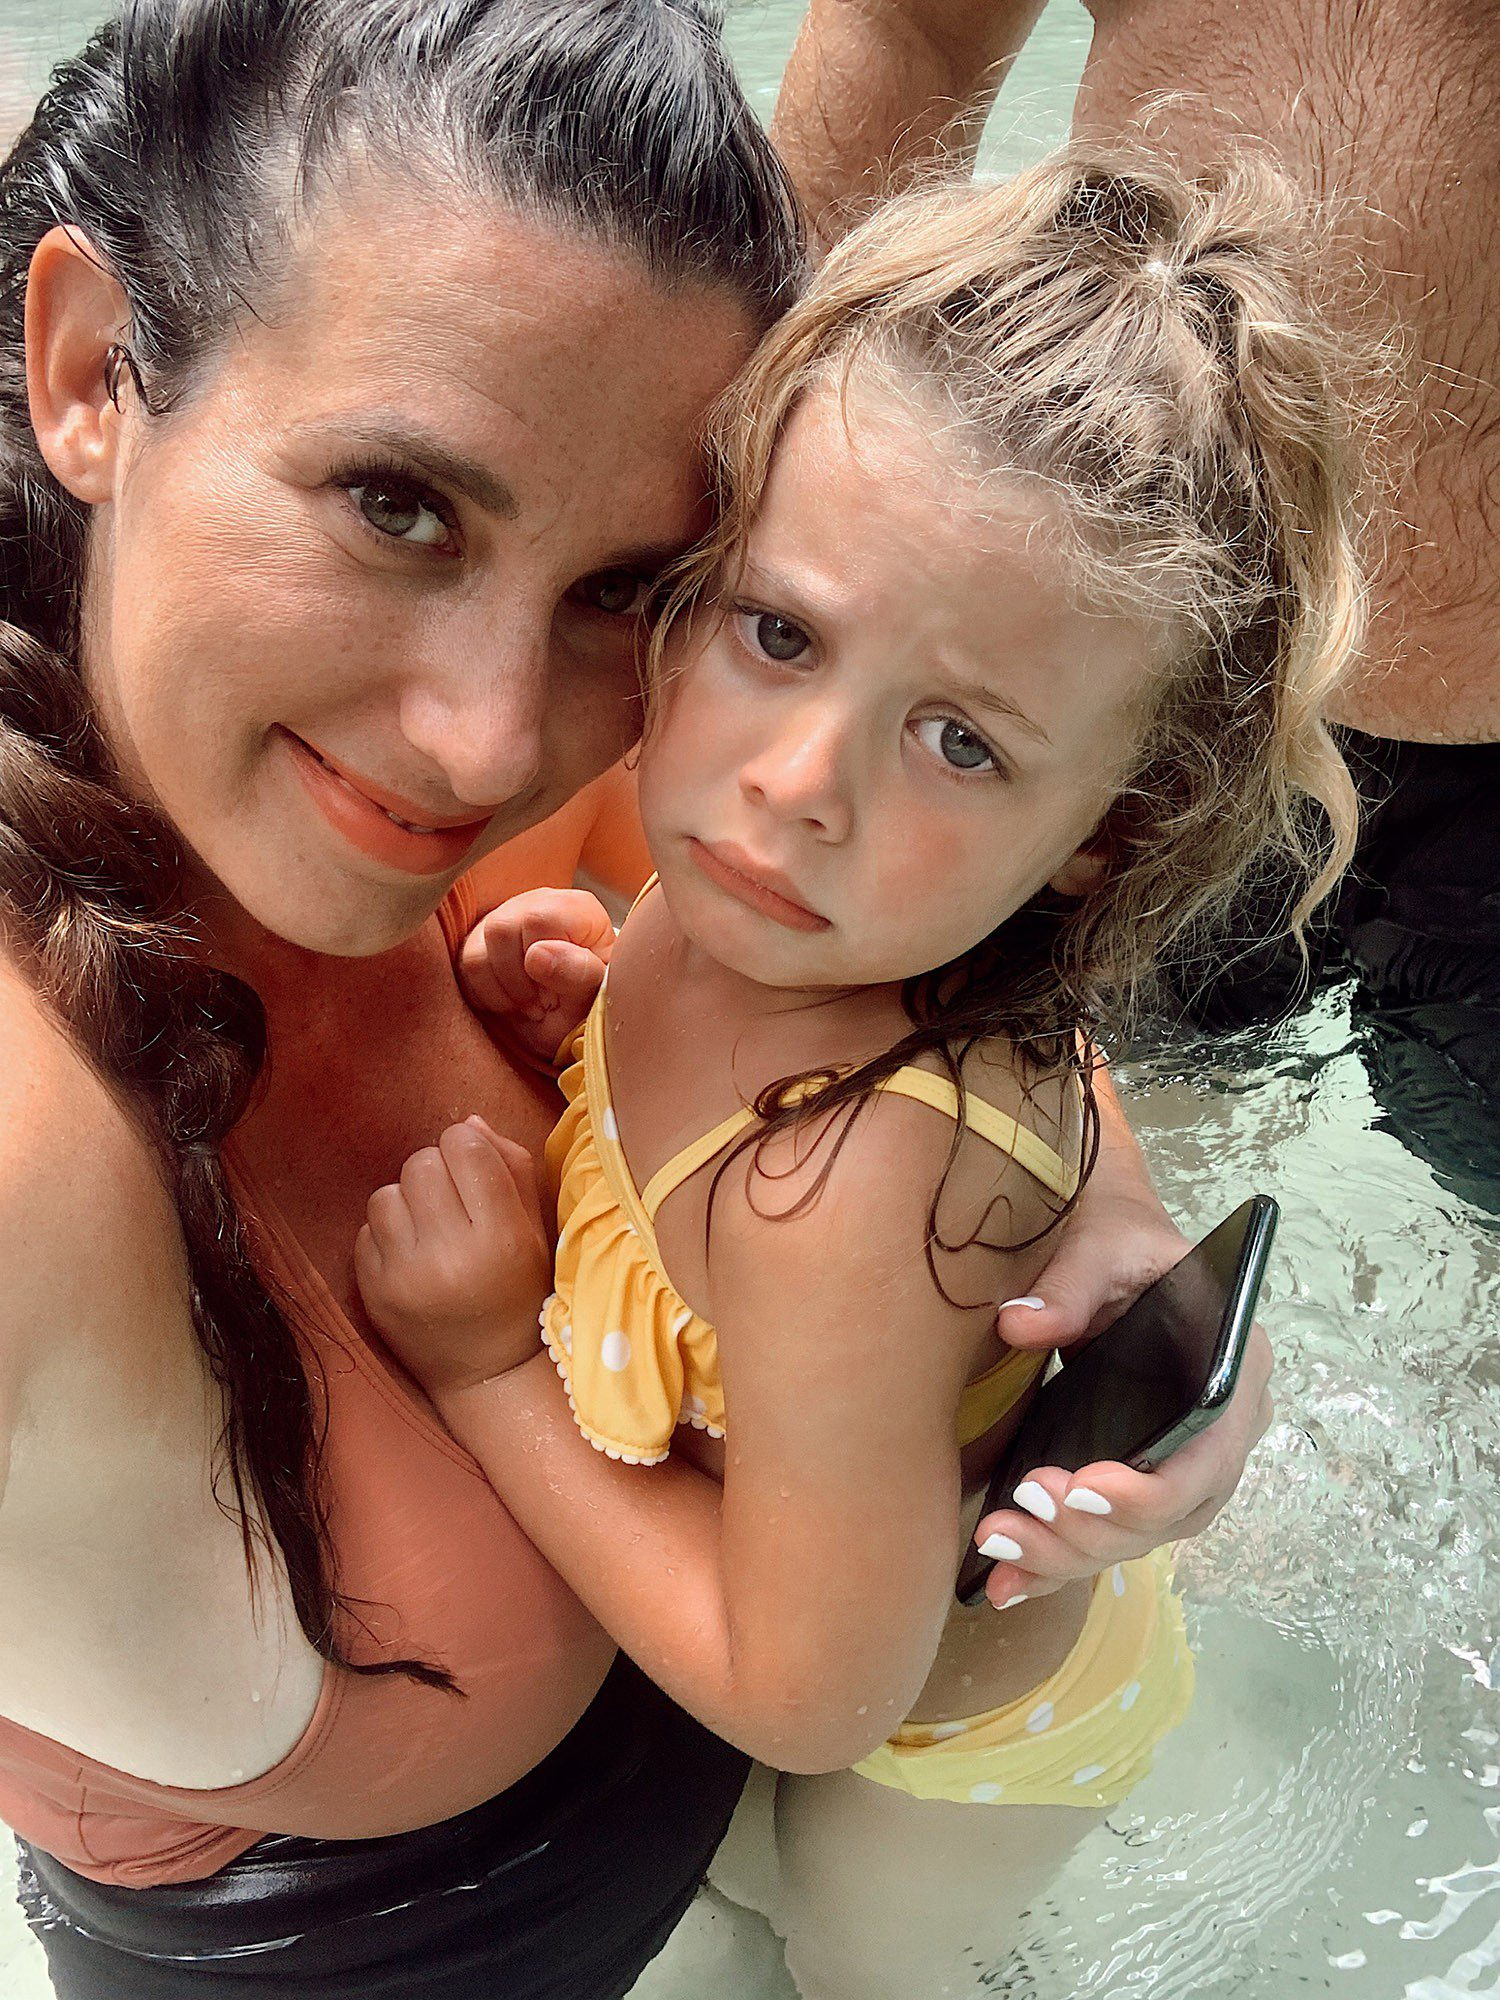 Tips for an Amazing Weeki Wachee Kayaking Florida Staycation. Visit Florida Travel ideas from top lifestyle blogger Tabitha Blue of Fresh Mommy Blog. | Weeki Wachee Kayaking by popular Florida blog, Fresh Mommy Blog: image of Tabitha Blue holding her young daughter as they stand in the water.